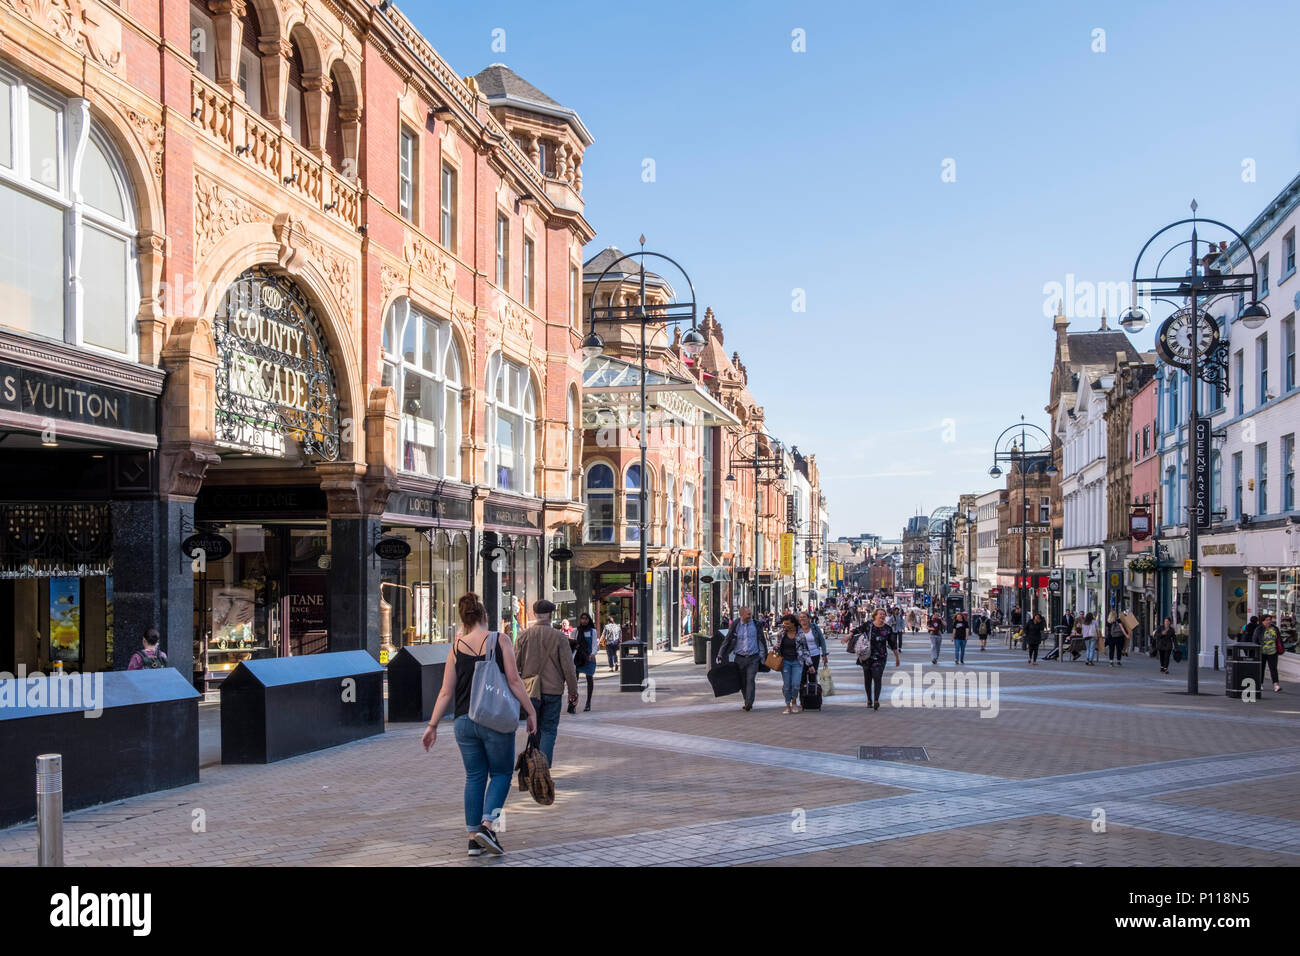 Shoppers on Briggate in the Victoria Quarter of Leeds city centre, West Yorkshire, England, UK - Stock Image